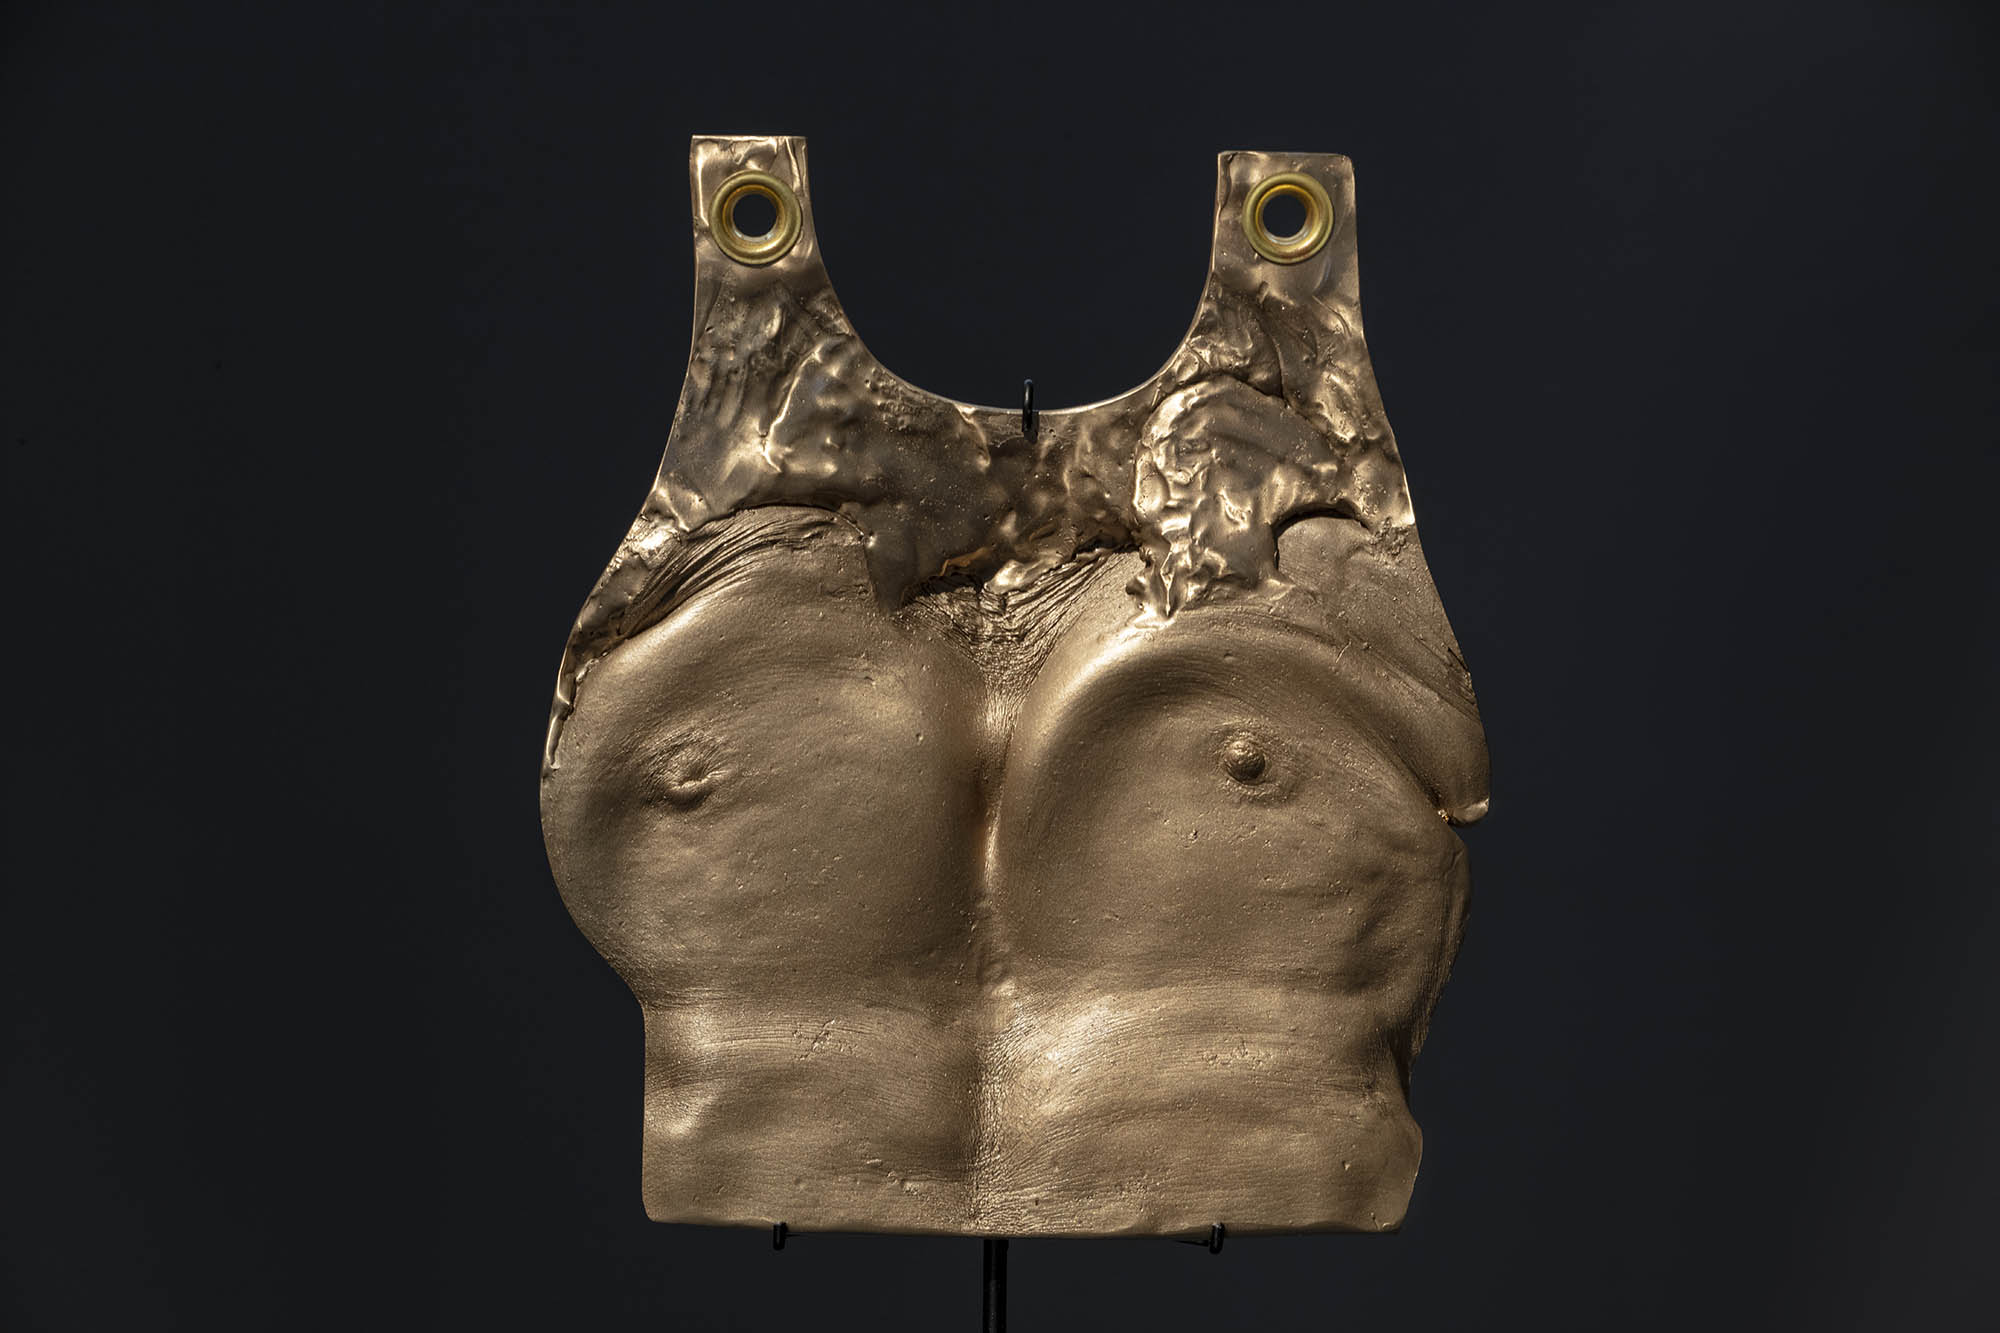 """JULIE RRAP  """"Beating your Breast"""" Plate  [detail] ,  2019 Bronze and steel, edition of 3  106 x 40 x 28.5 cm Photograph by John Gollings"""